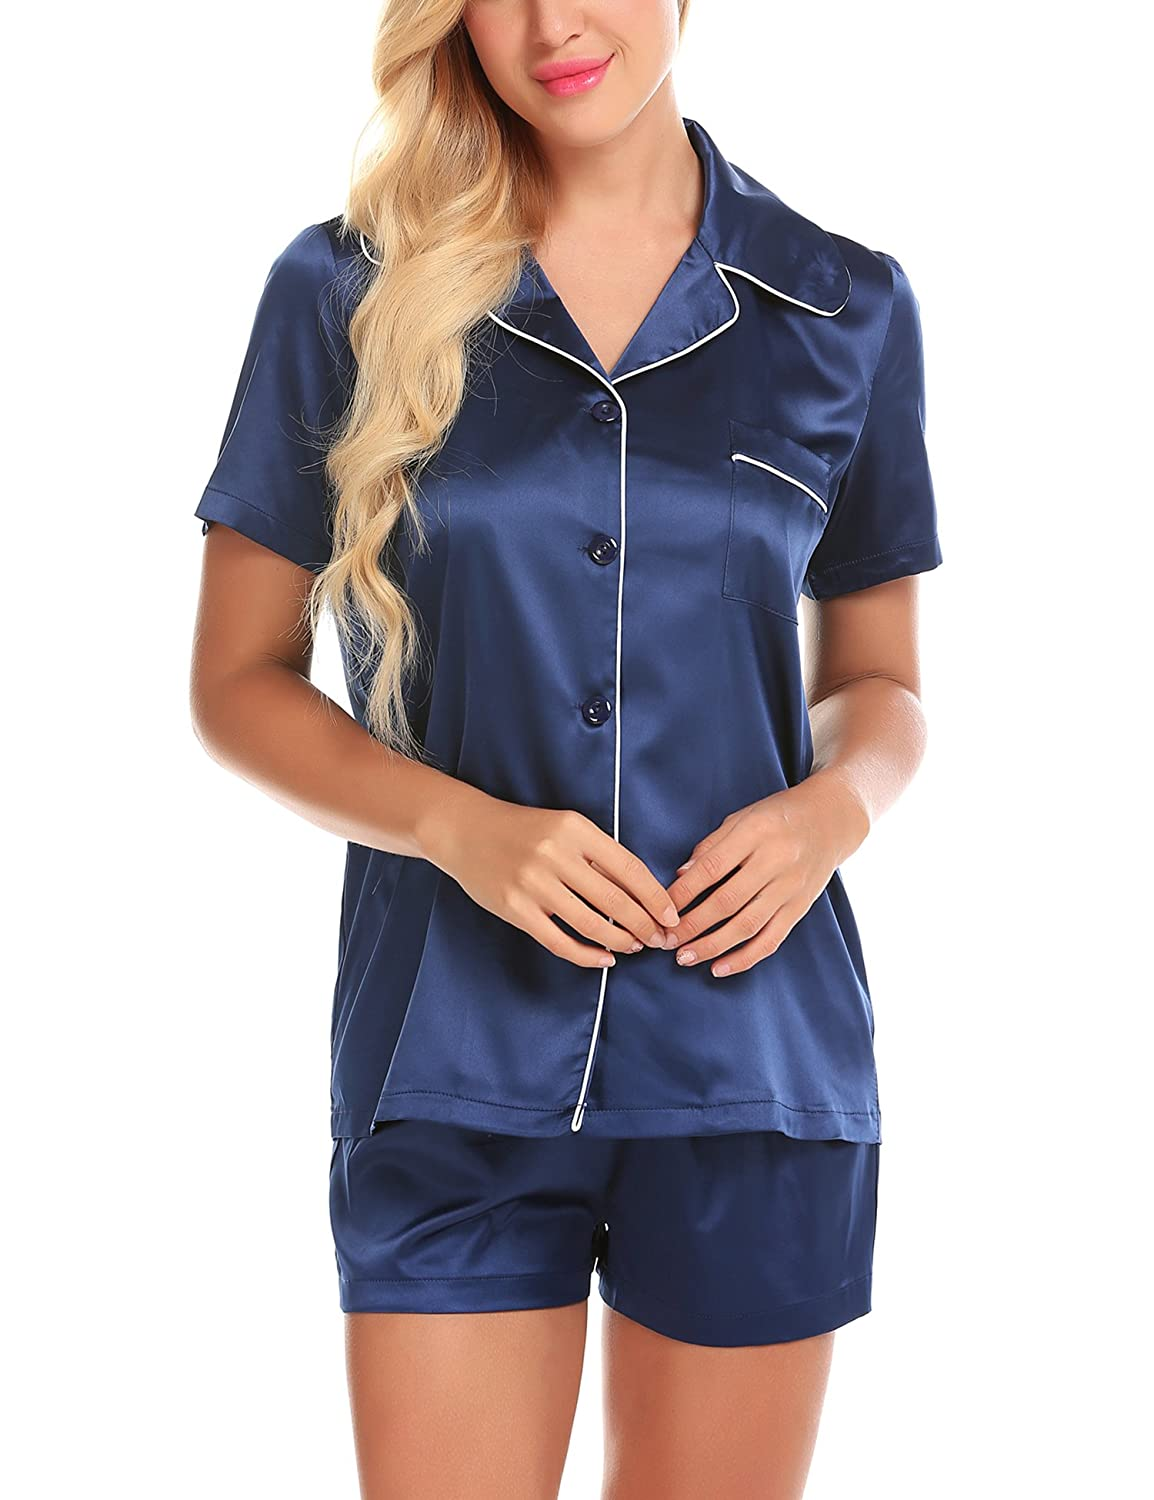 Summer Pajamas for Women Satin Short Sleeve with Shorts Pockets Button up Pj Set